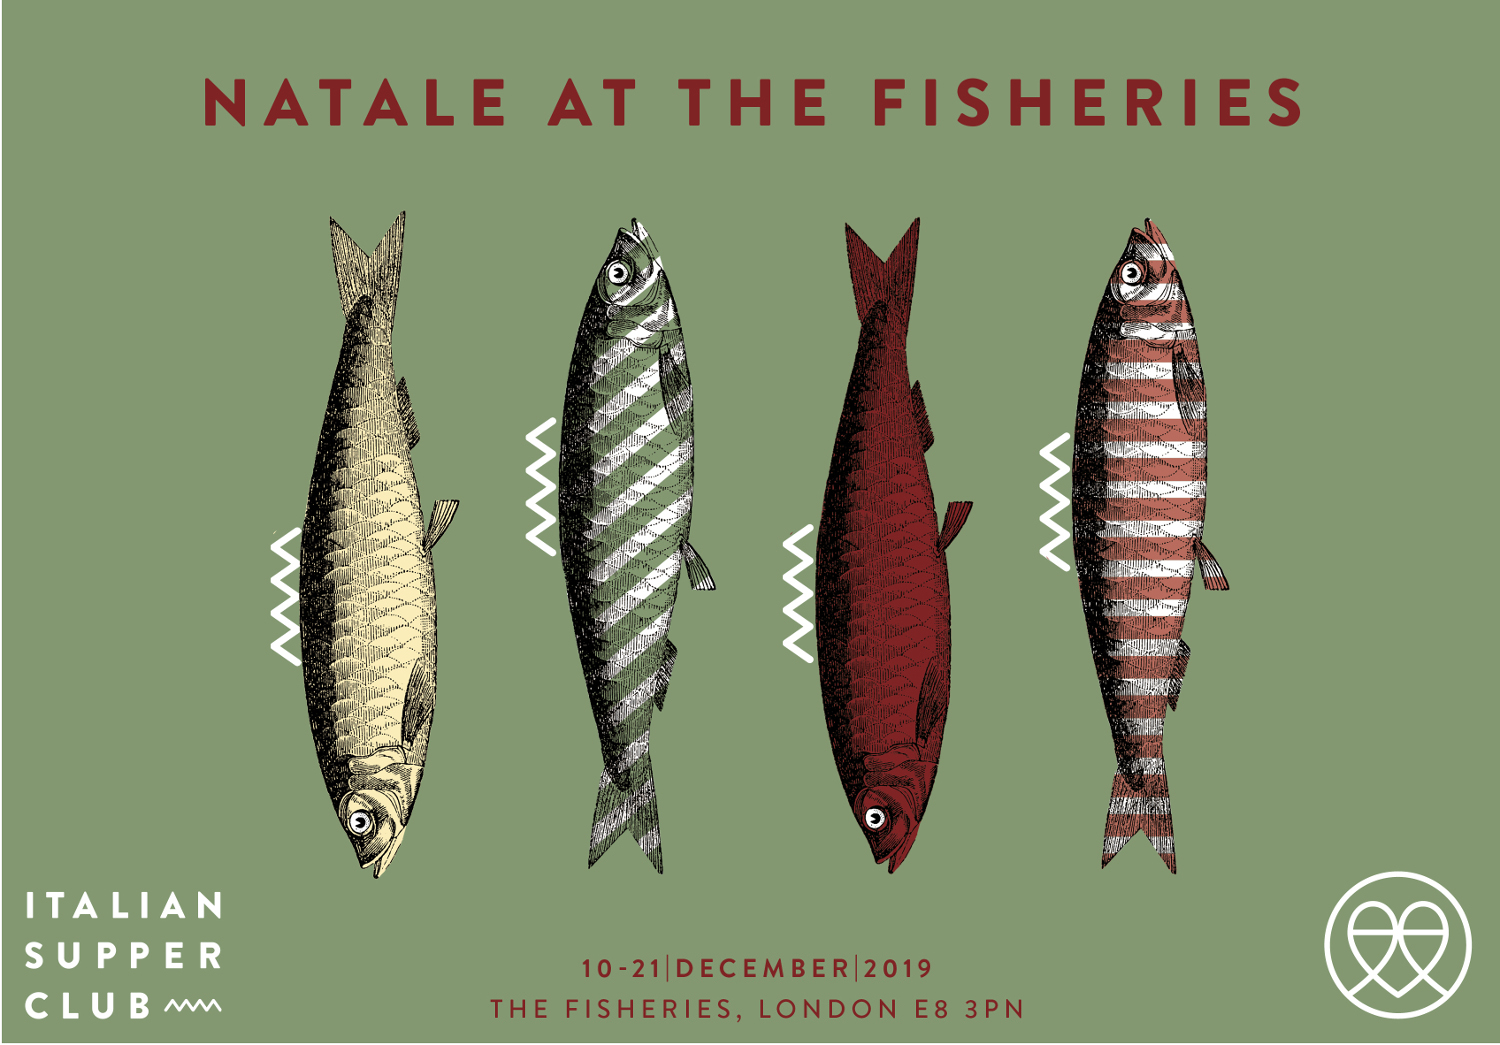 Natale at the Fisheries